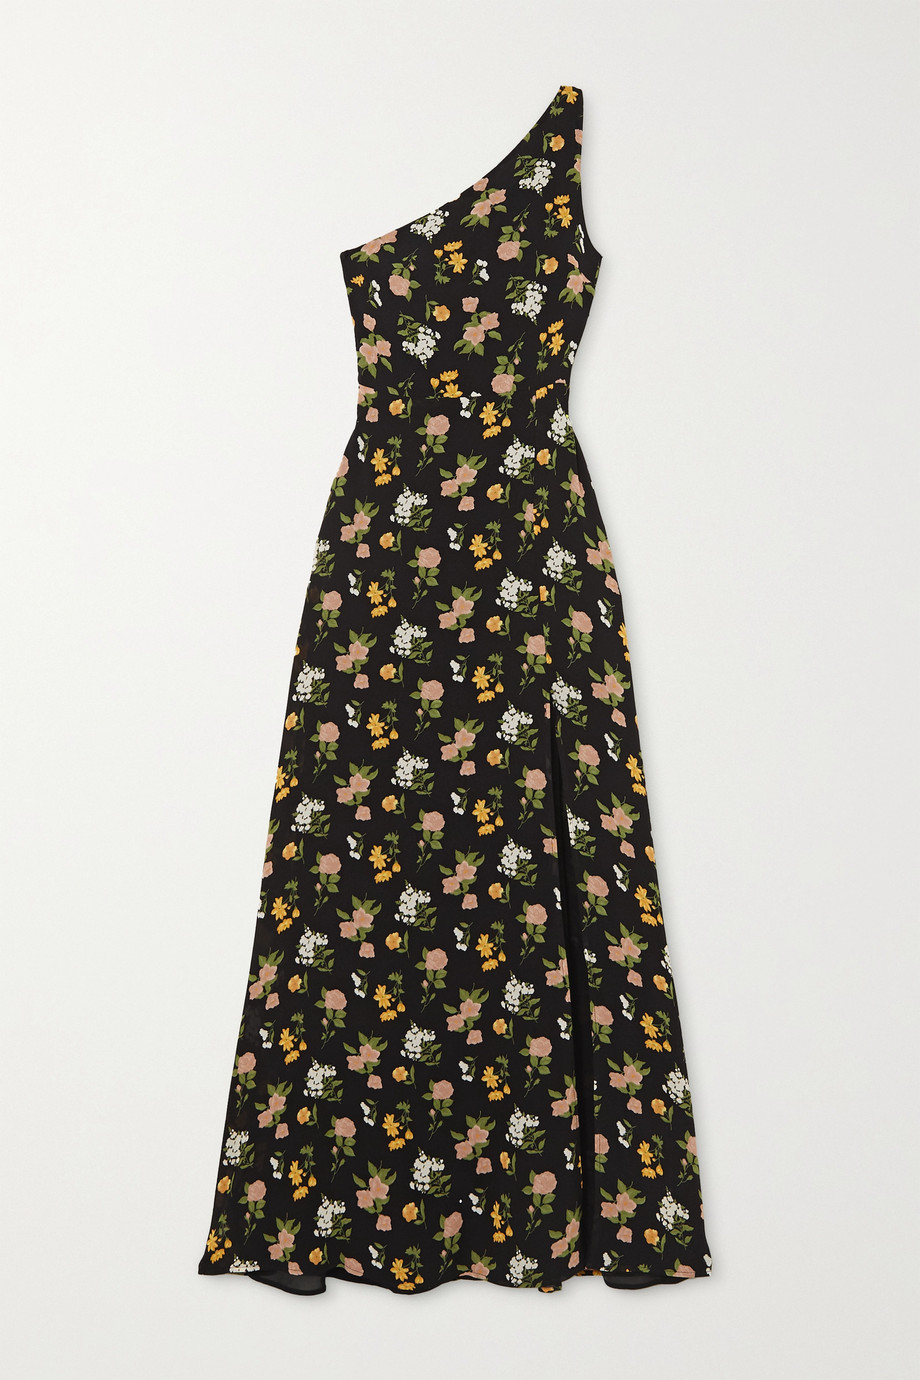 Reformation + NET SUSTAIN Evelyn one-shoulder floral-print georgette maxi dress